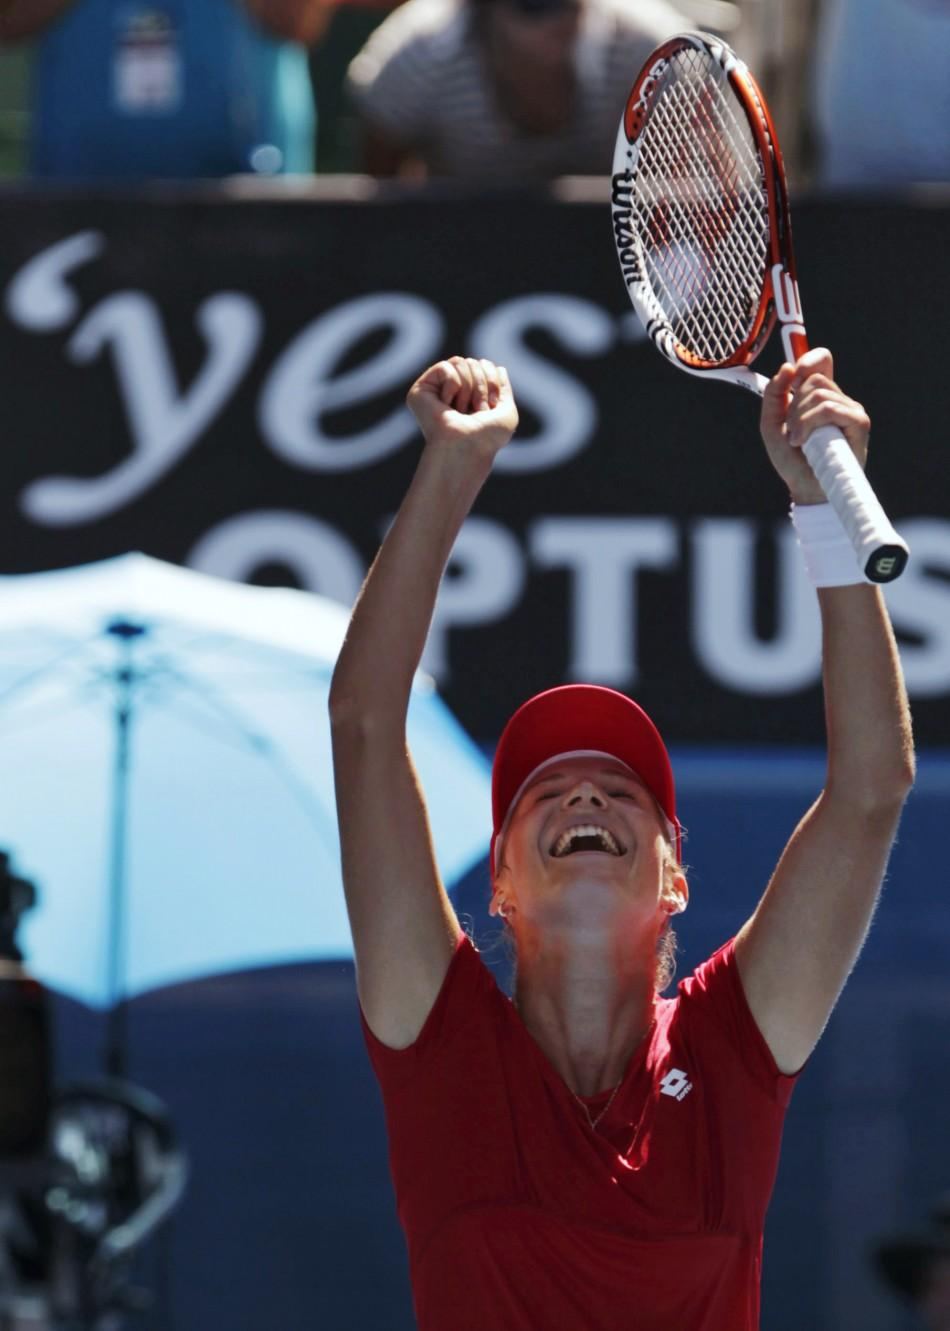 Ekaterina Makarova of Russia celebrates defeating Serena Williams of the U.S. during their women's singles match at the Australian Open tennis tournament